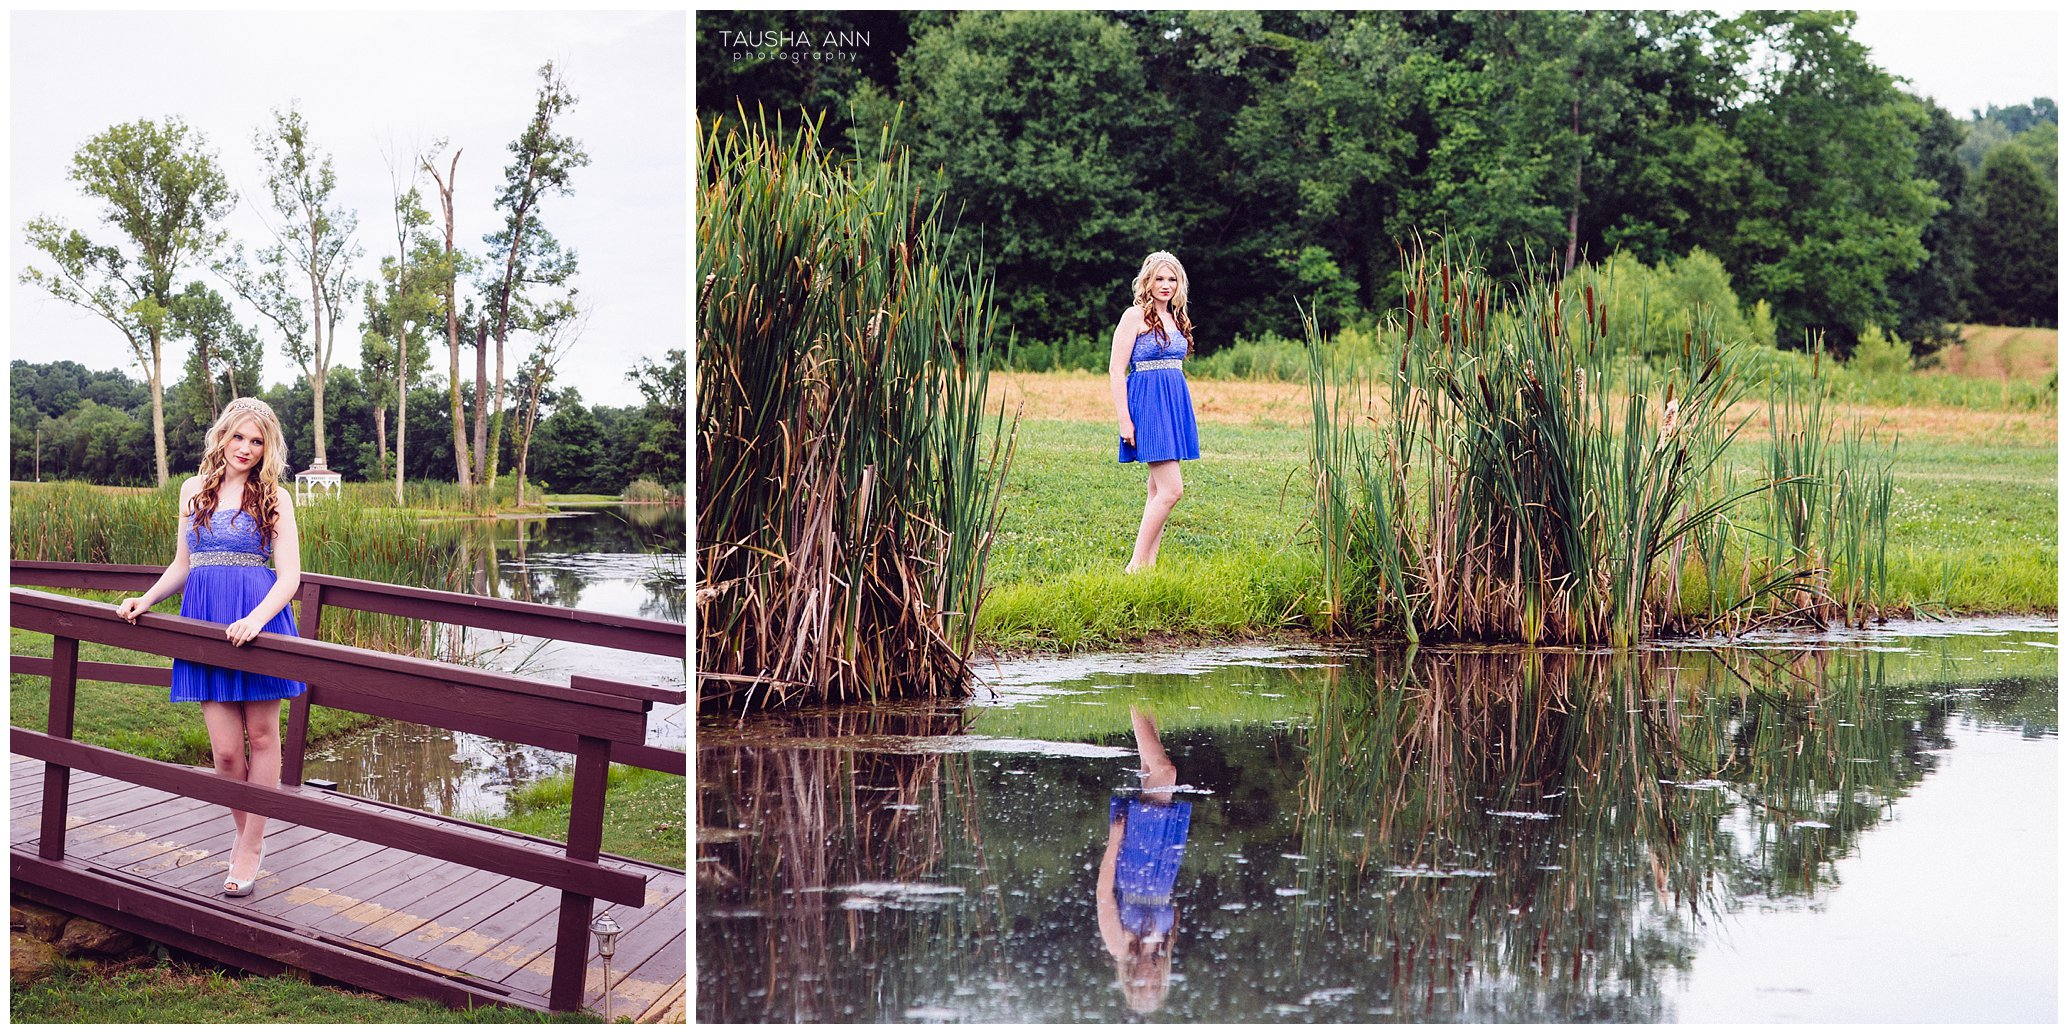 Sammie's_Sweet_16_Duck_Pond_Farm_Mt_Juliet_Tausha_Ann_Photography_Model_Nashville_Franklin_Spinning_Blue_Dress_Tiara_Reflection